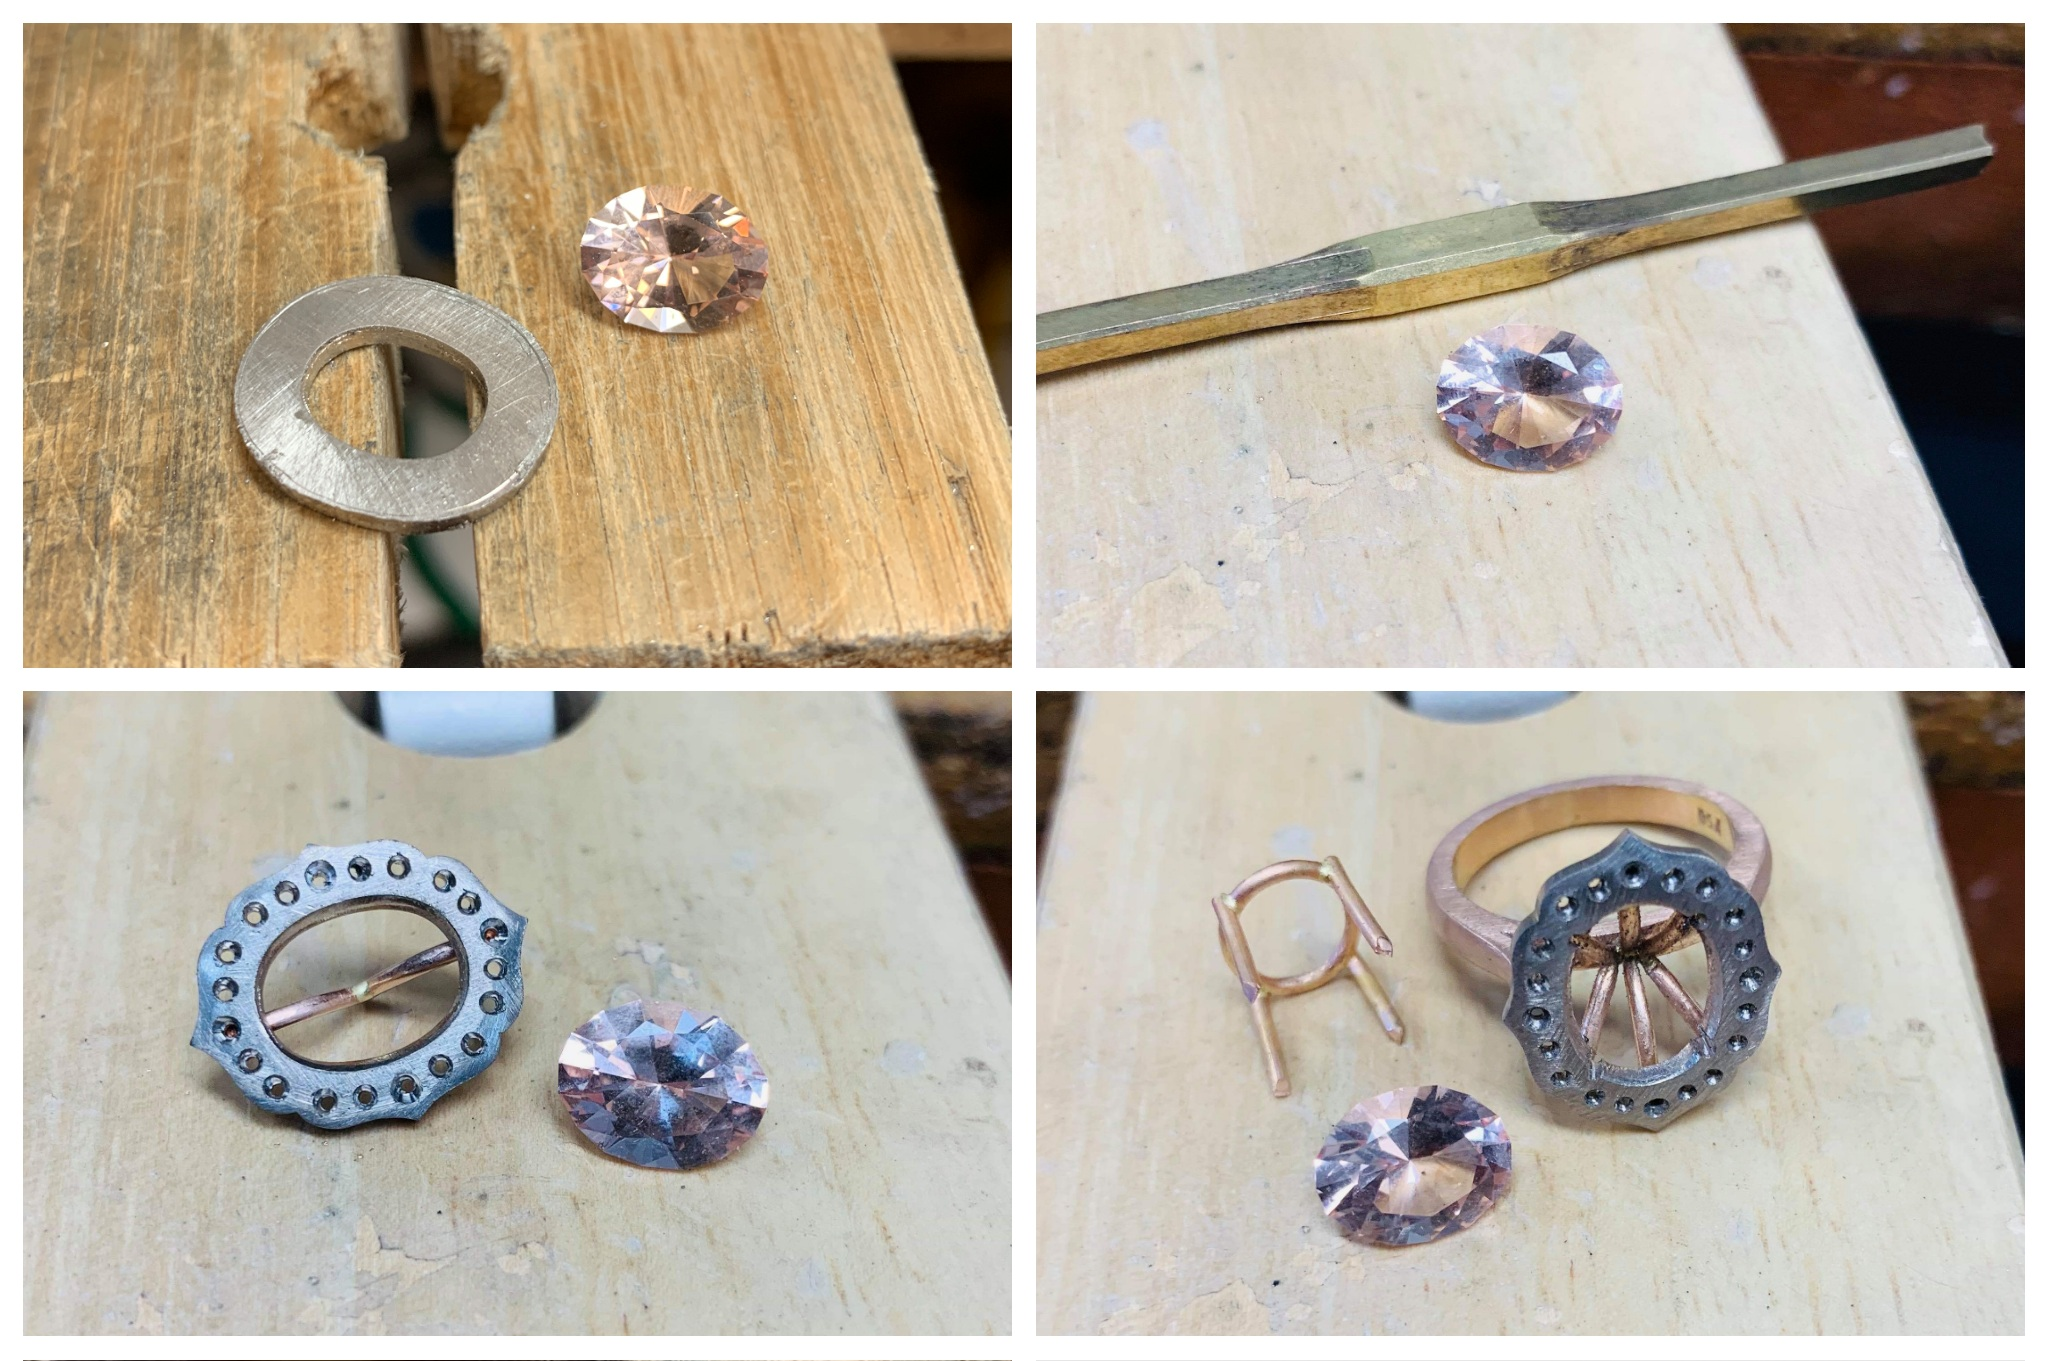 From the workshop, creating Stephanie and Joel's vintage inspired engagement ring frame.